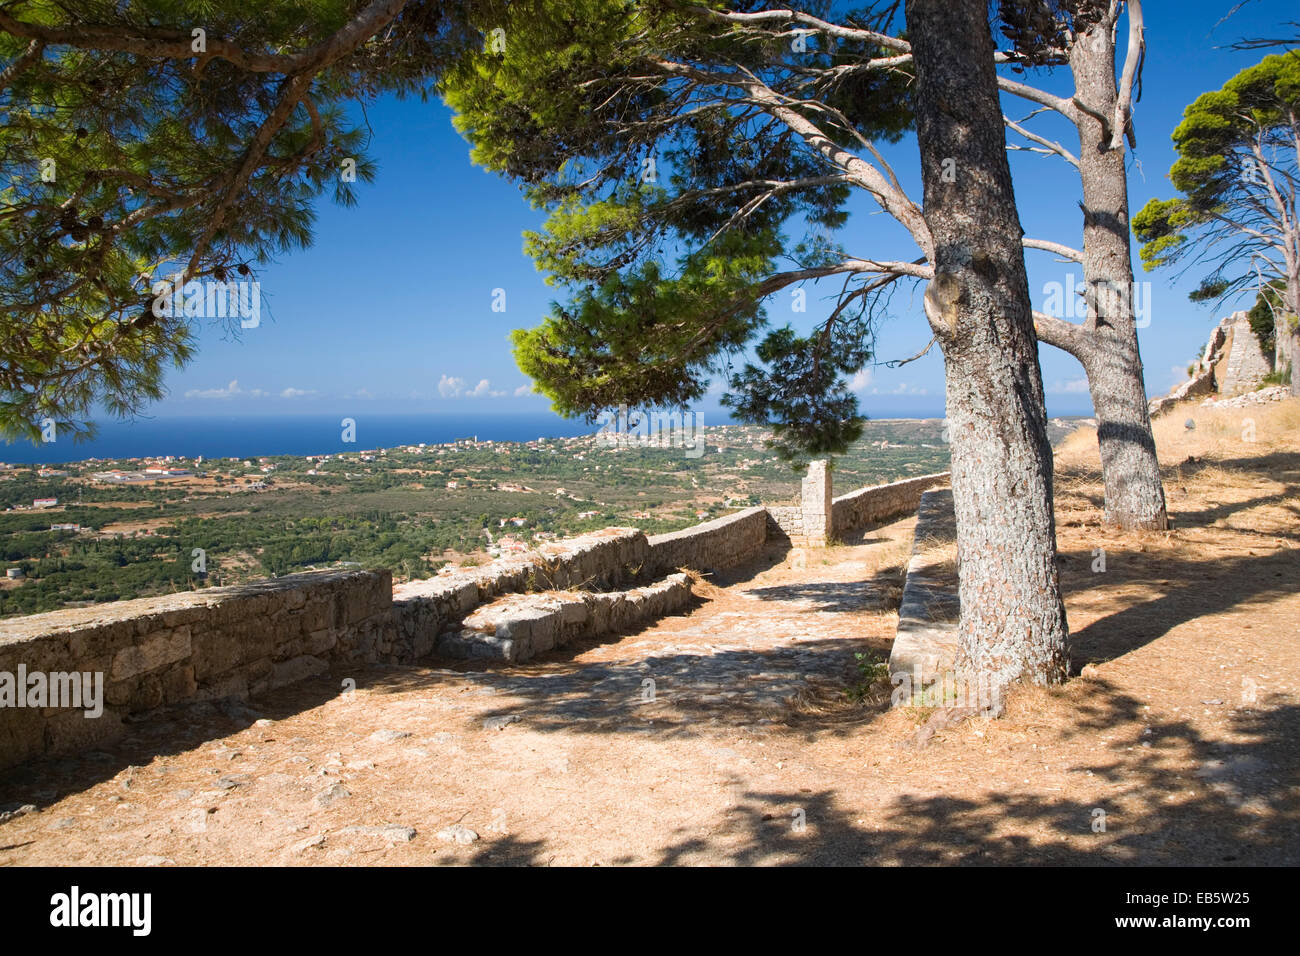 Kastro, Kefalonia, Ionian Islands, Greece. View towards the coast from ramparts of the Castle of Agios Georgios. - Stock Image